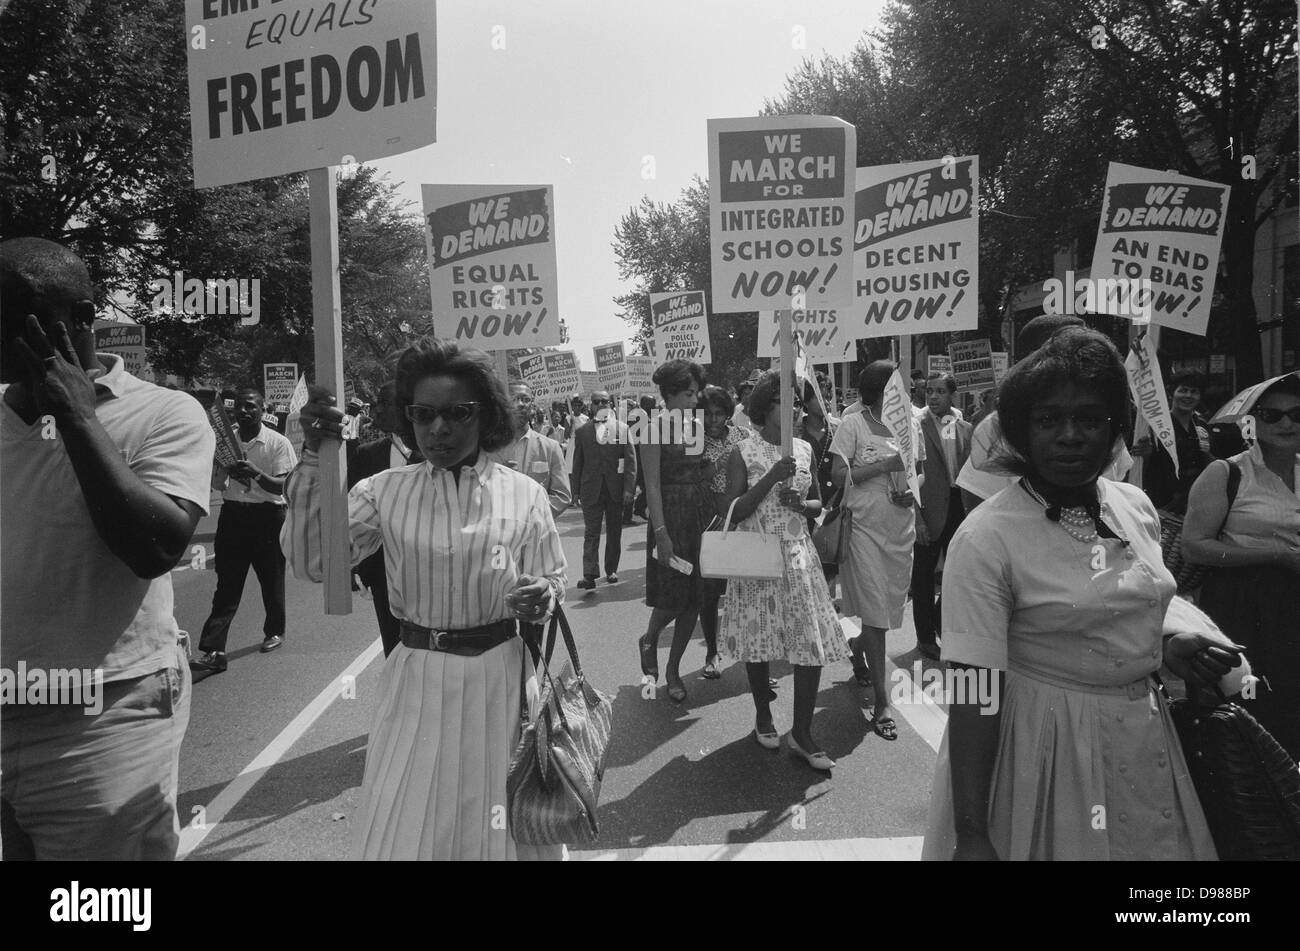 Civil rights march on Washington, DC, USA. Procession of African Americans carrying placards demanding equal rights, - Stock Image